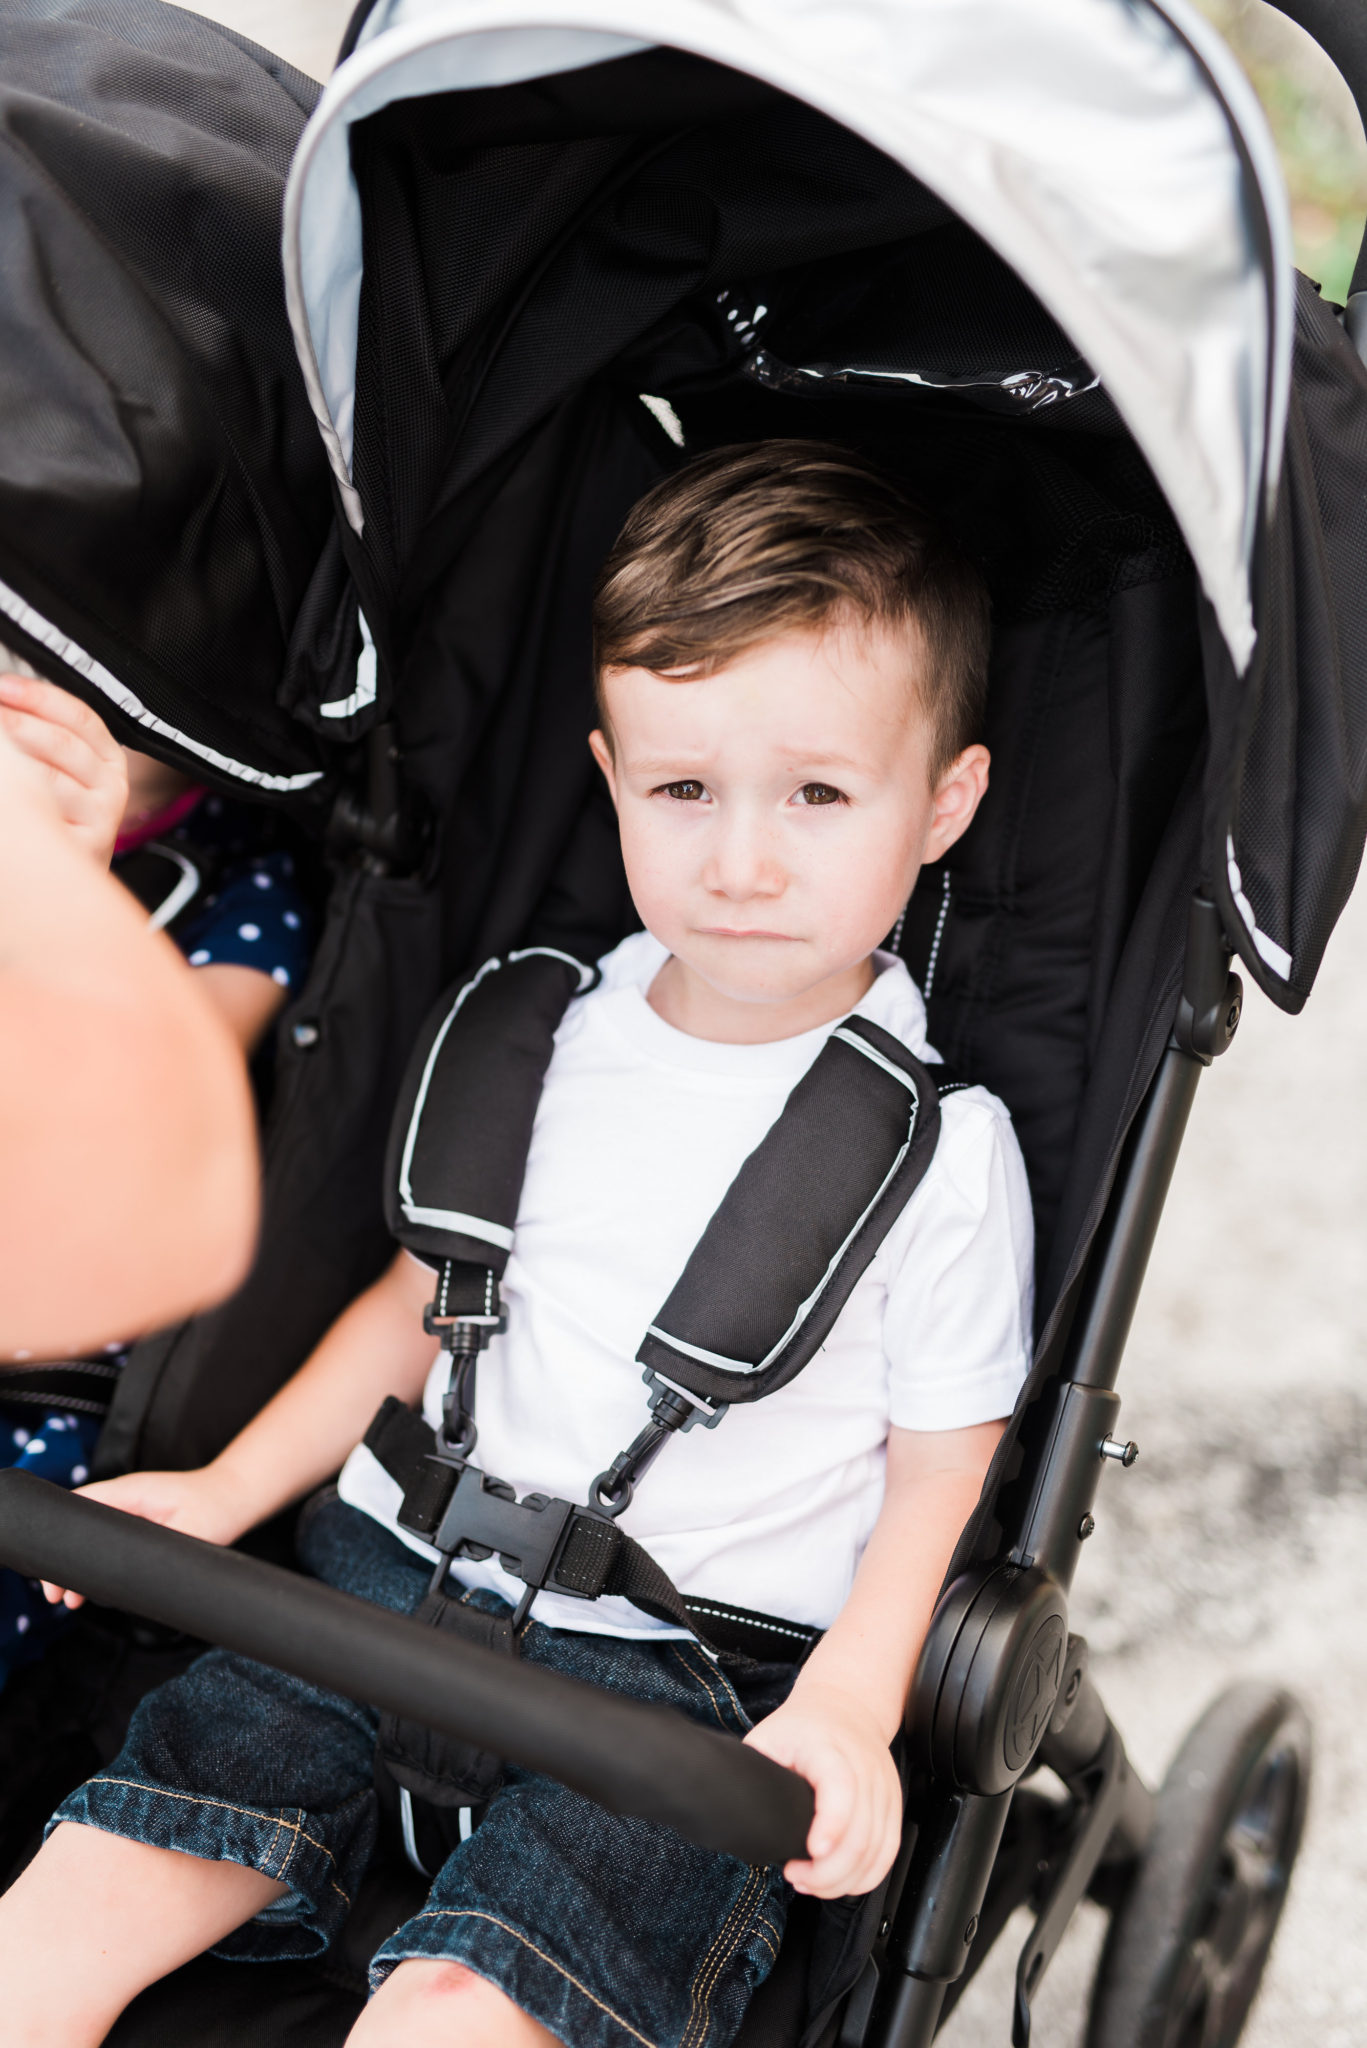 creative ways to stay active as a family, the best double stroller for toddlers